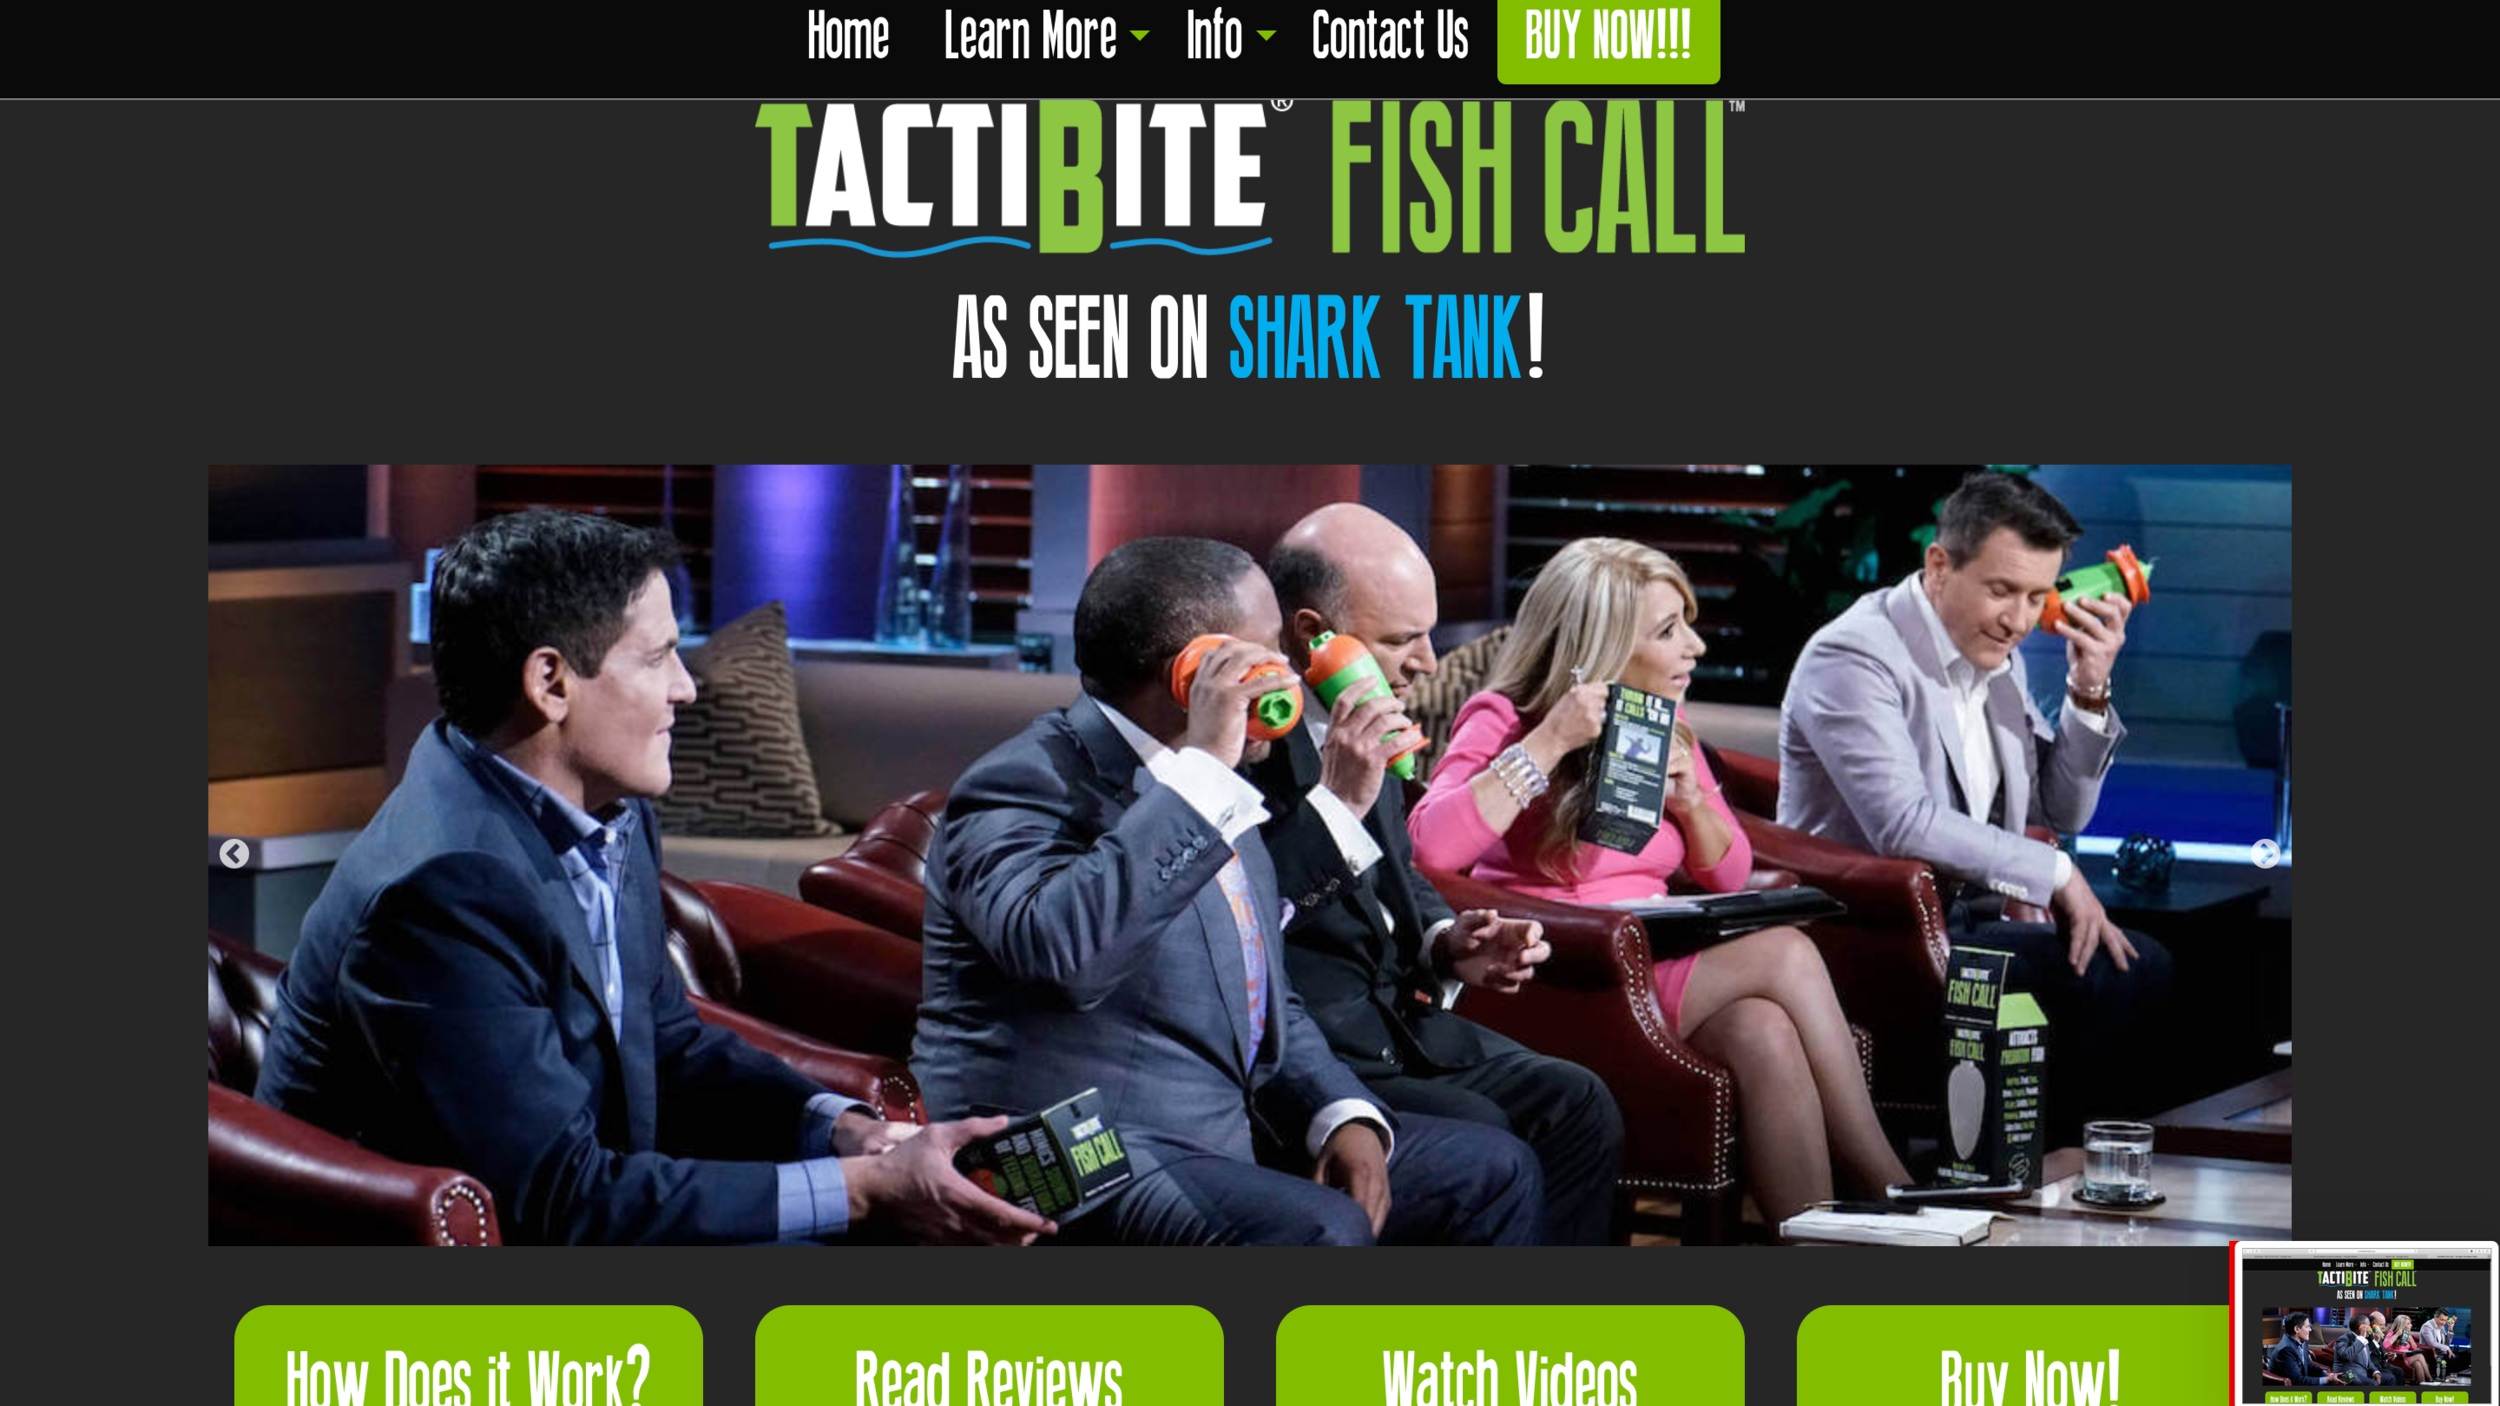 Best marketing agency for consumer product PR. The Fish Call https://www.thefishcall.com